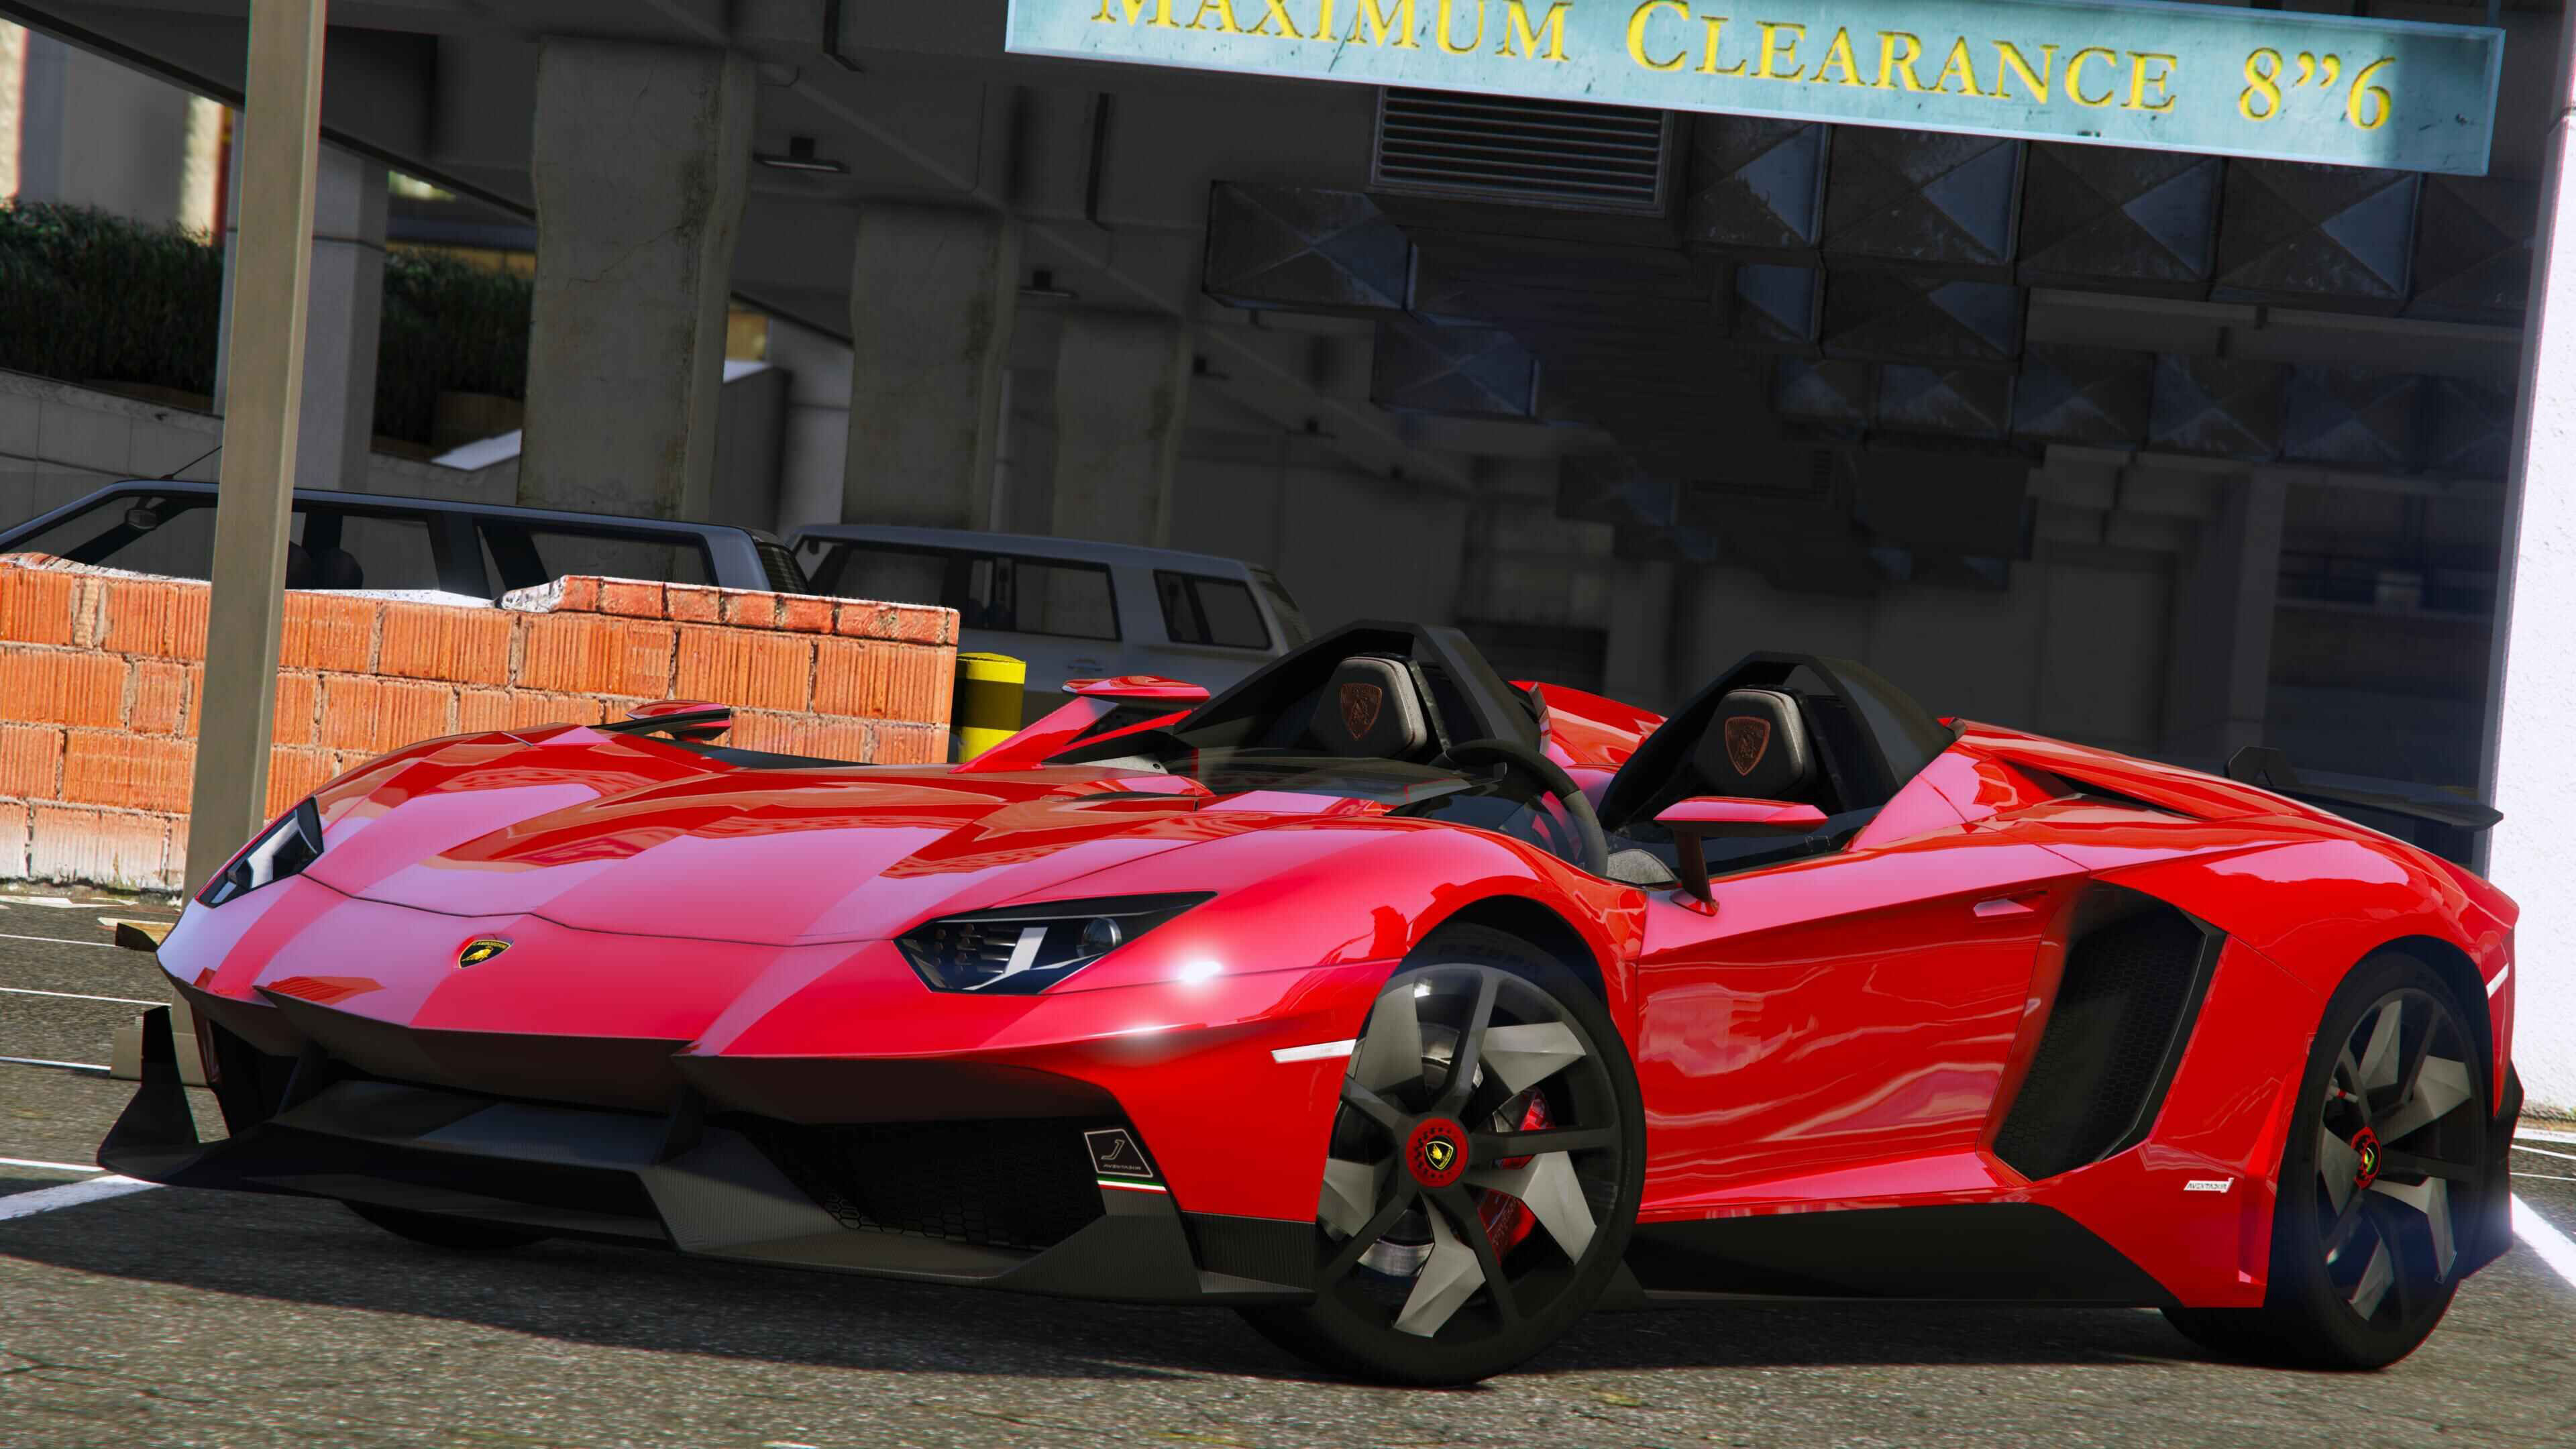 2012 lamborghini aventador j speedster add on gta5. Black Bedroom Furniture Sets. Home Design Ideas